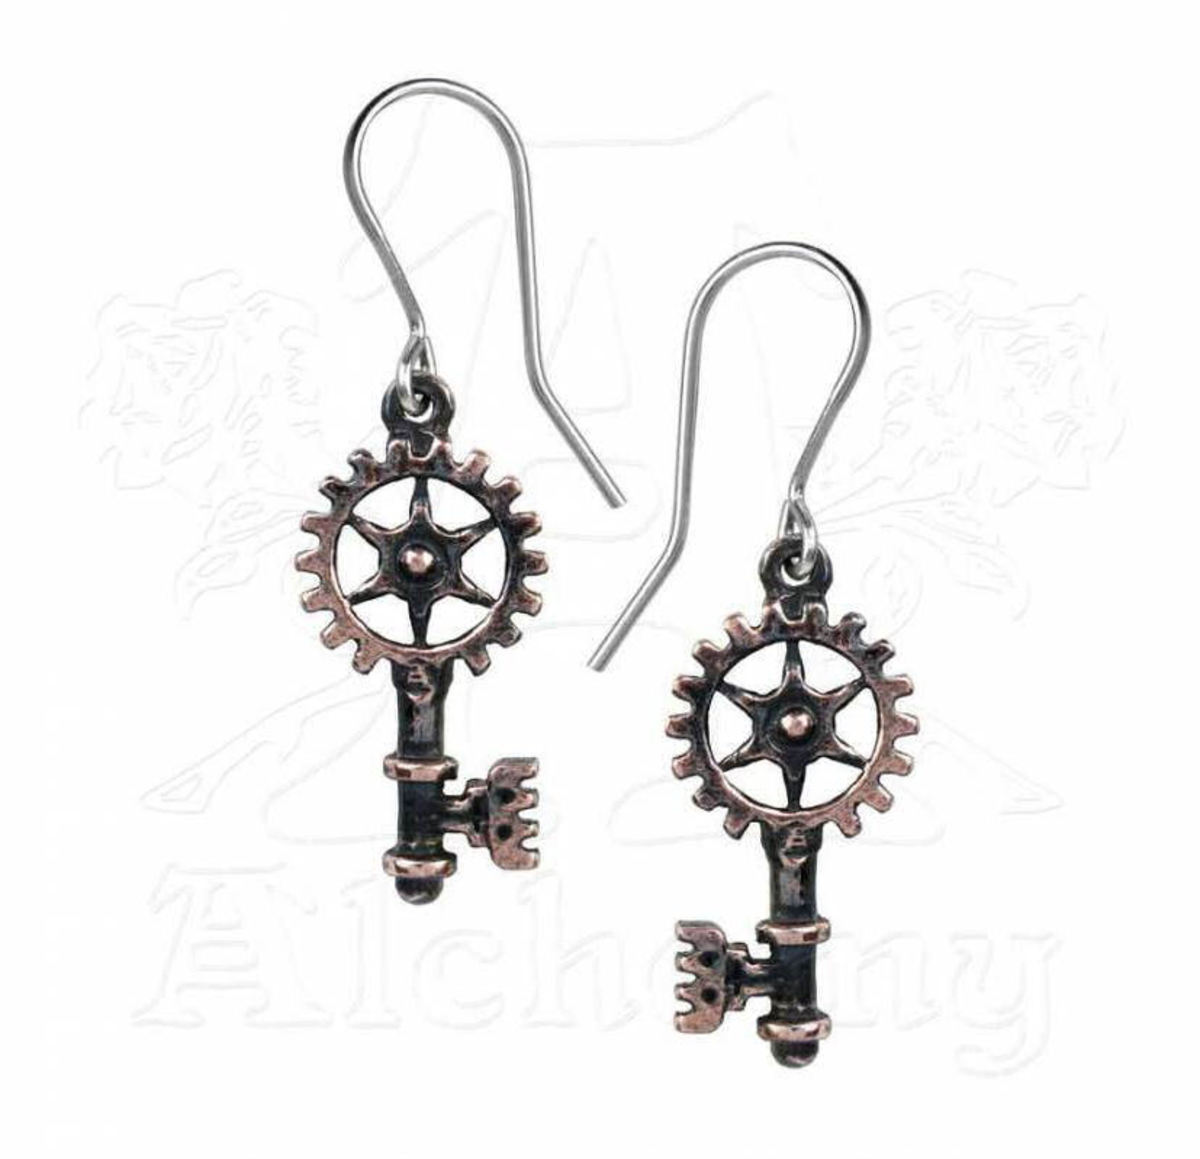 náušnice ALCHEMY GOTHIC - Clavitraction - E377